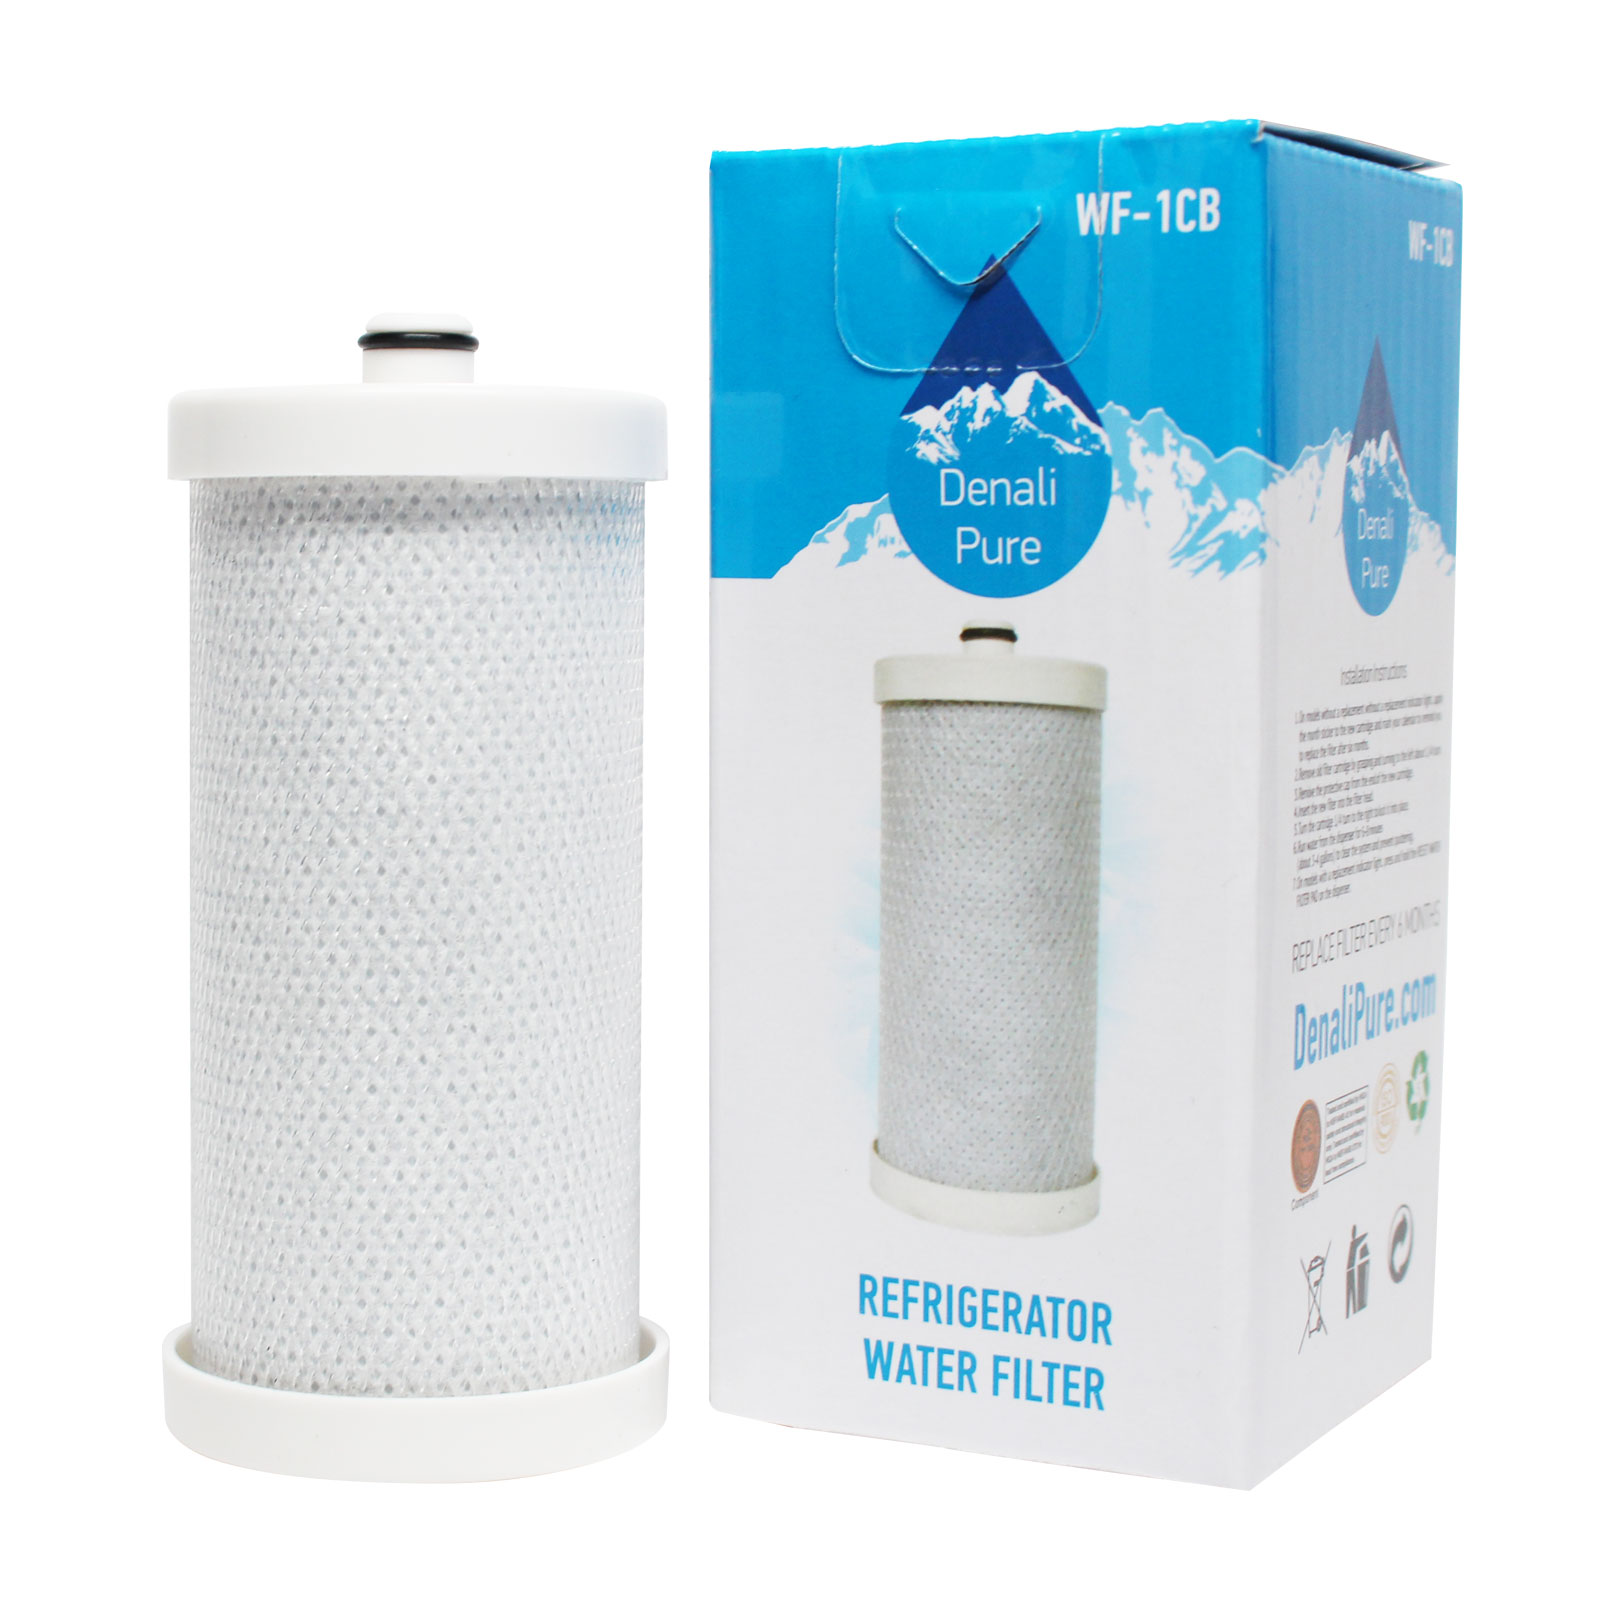 Replacement White Westinghouse WWSS2601KW1 Refrigerator Water Filter - Compatible White Westinghouse WF1CB, WFCB Fridge Water Filter Cartridge